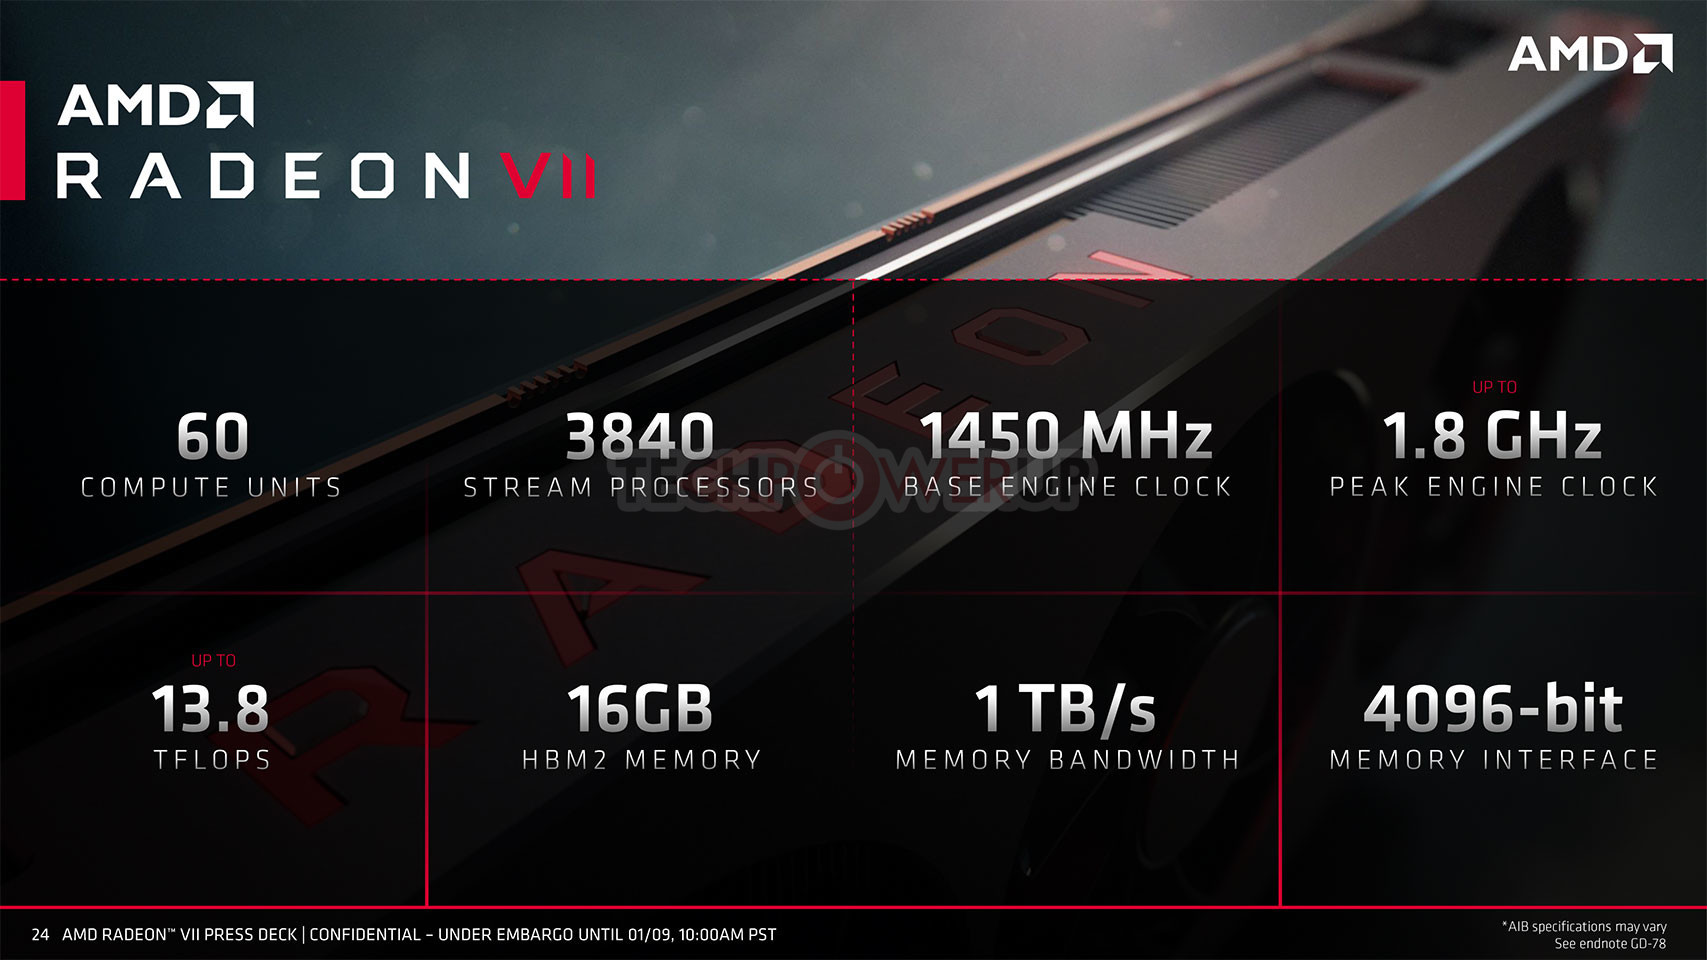 Amd Radeon Vii Detailed Some More Die Size Secret Sauce Ray Tracing And More Techpowerup